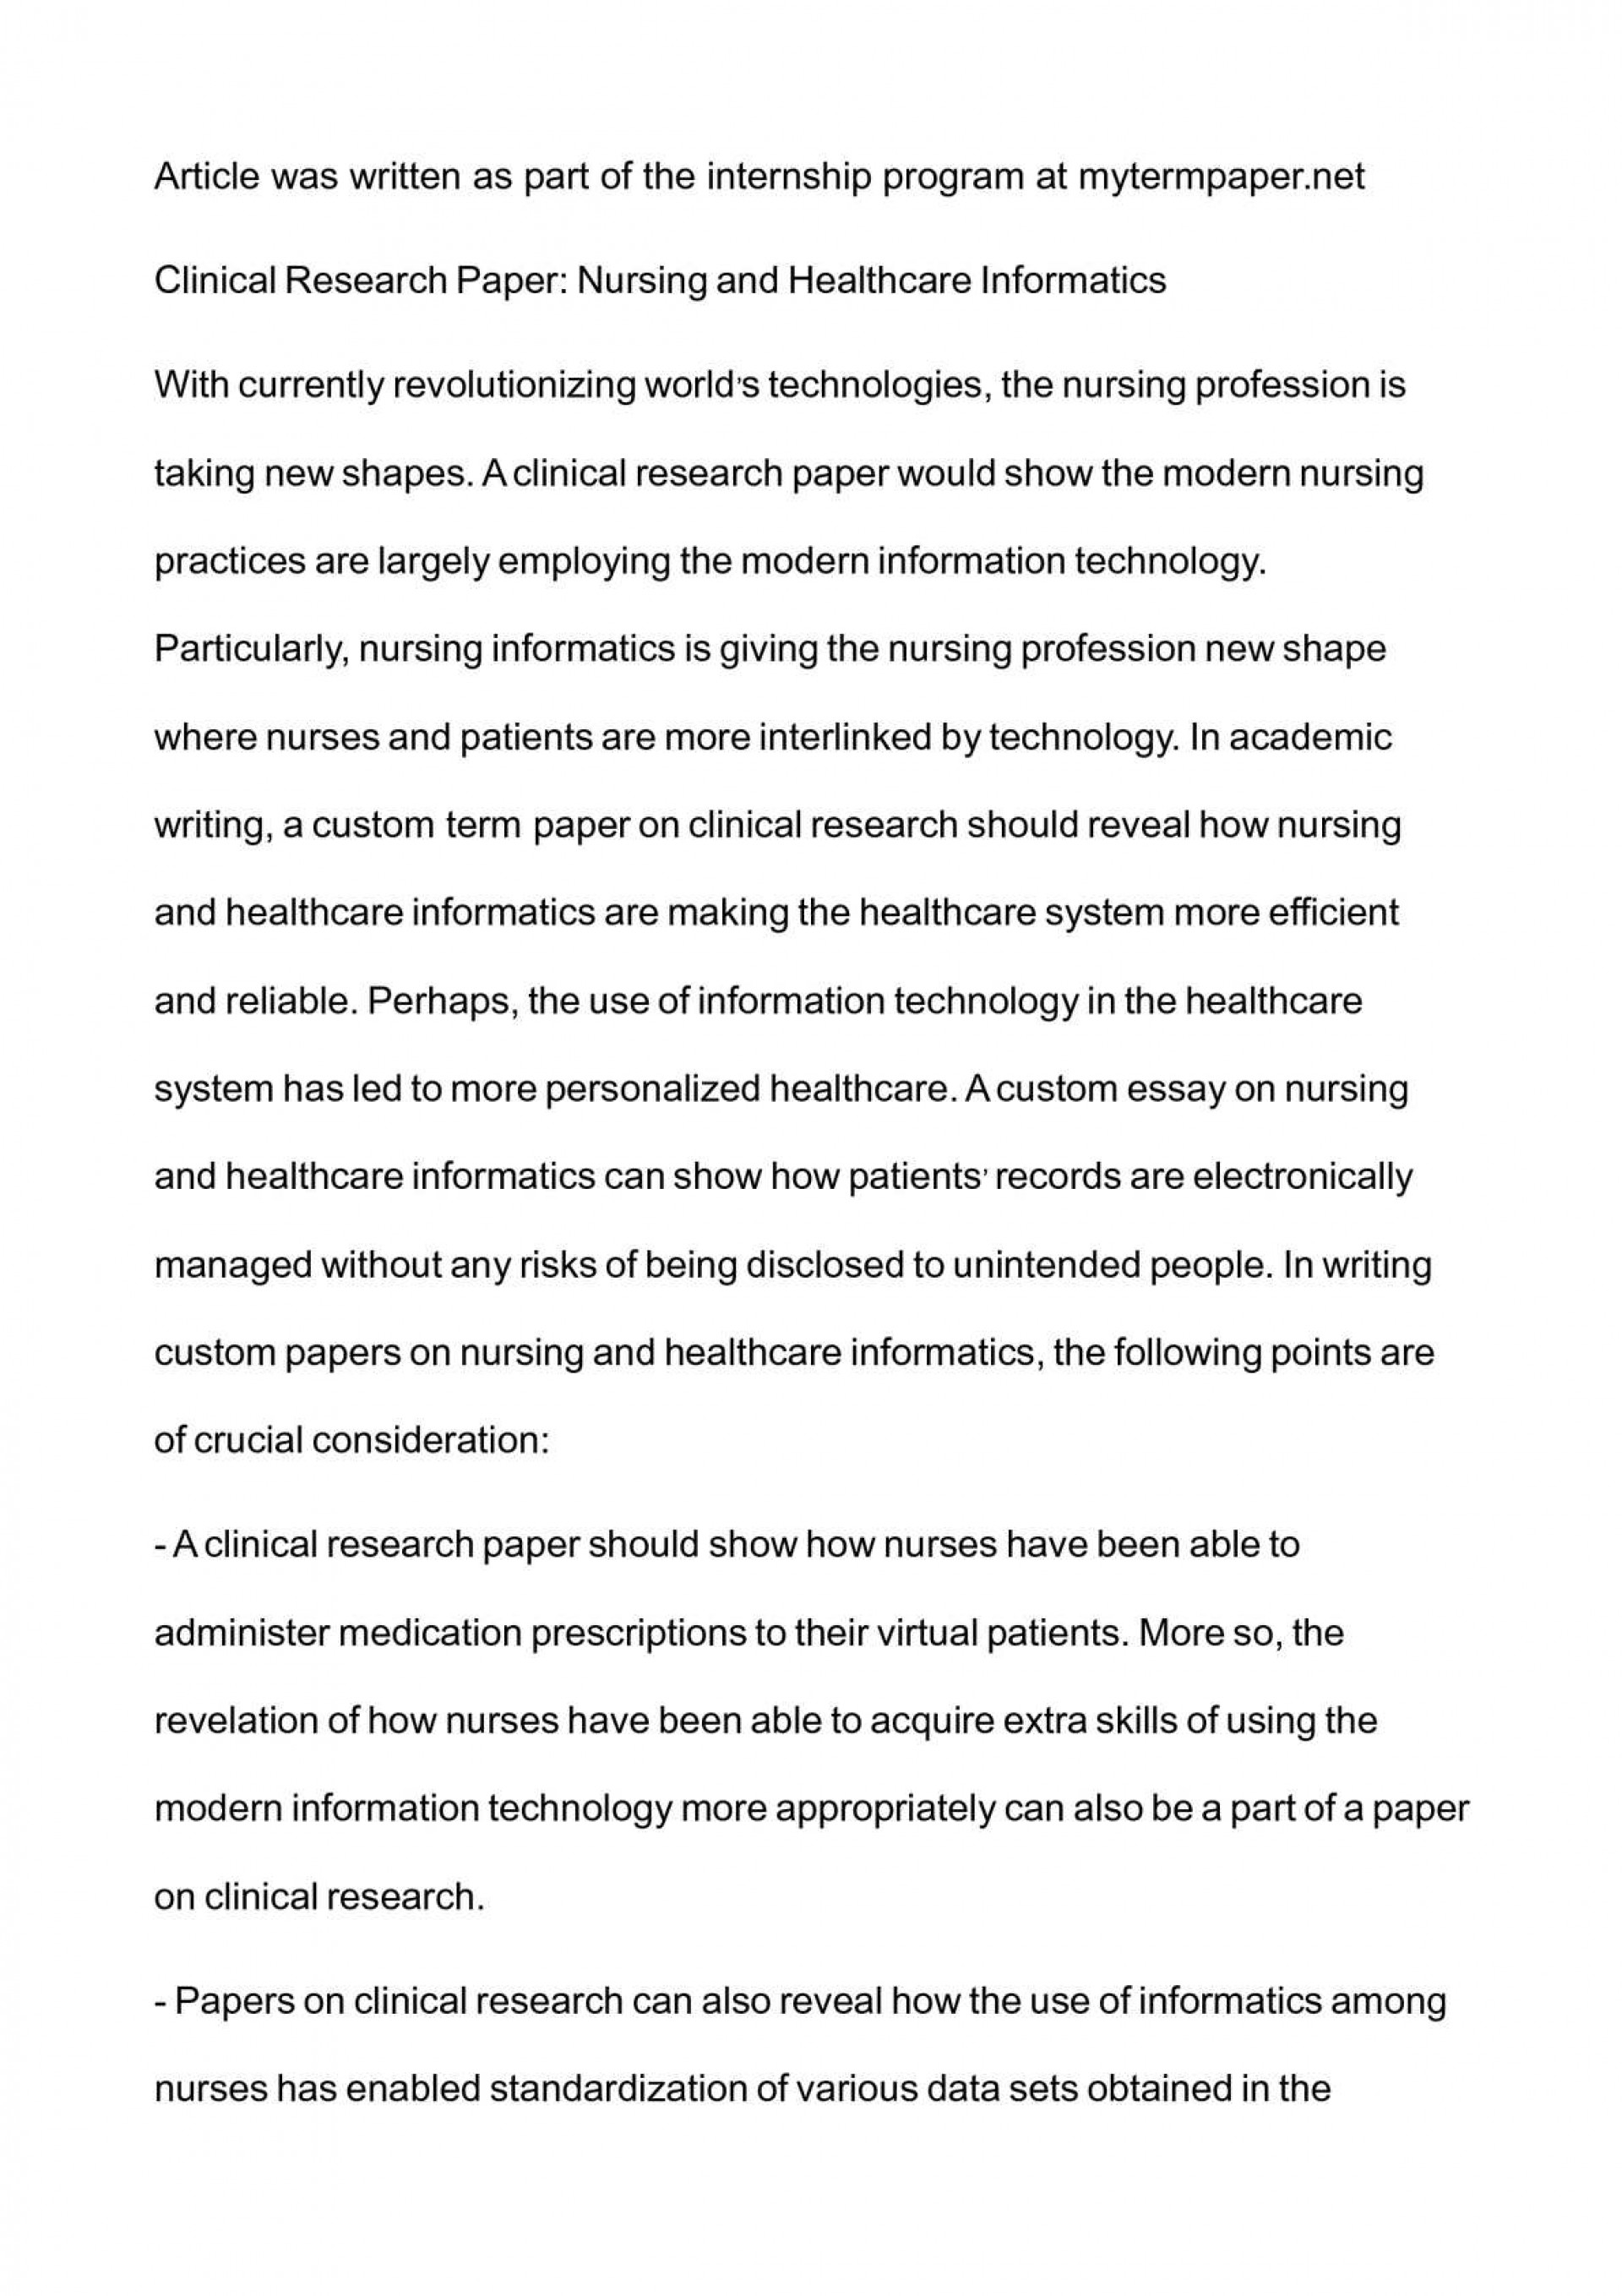 010 Research Paper Nursing Sensational Career Outline On Burnout Home Abuse And Neglect 1920